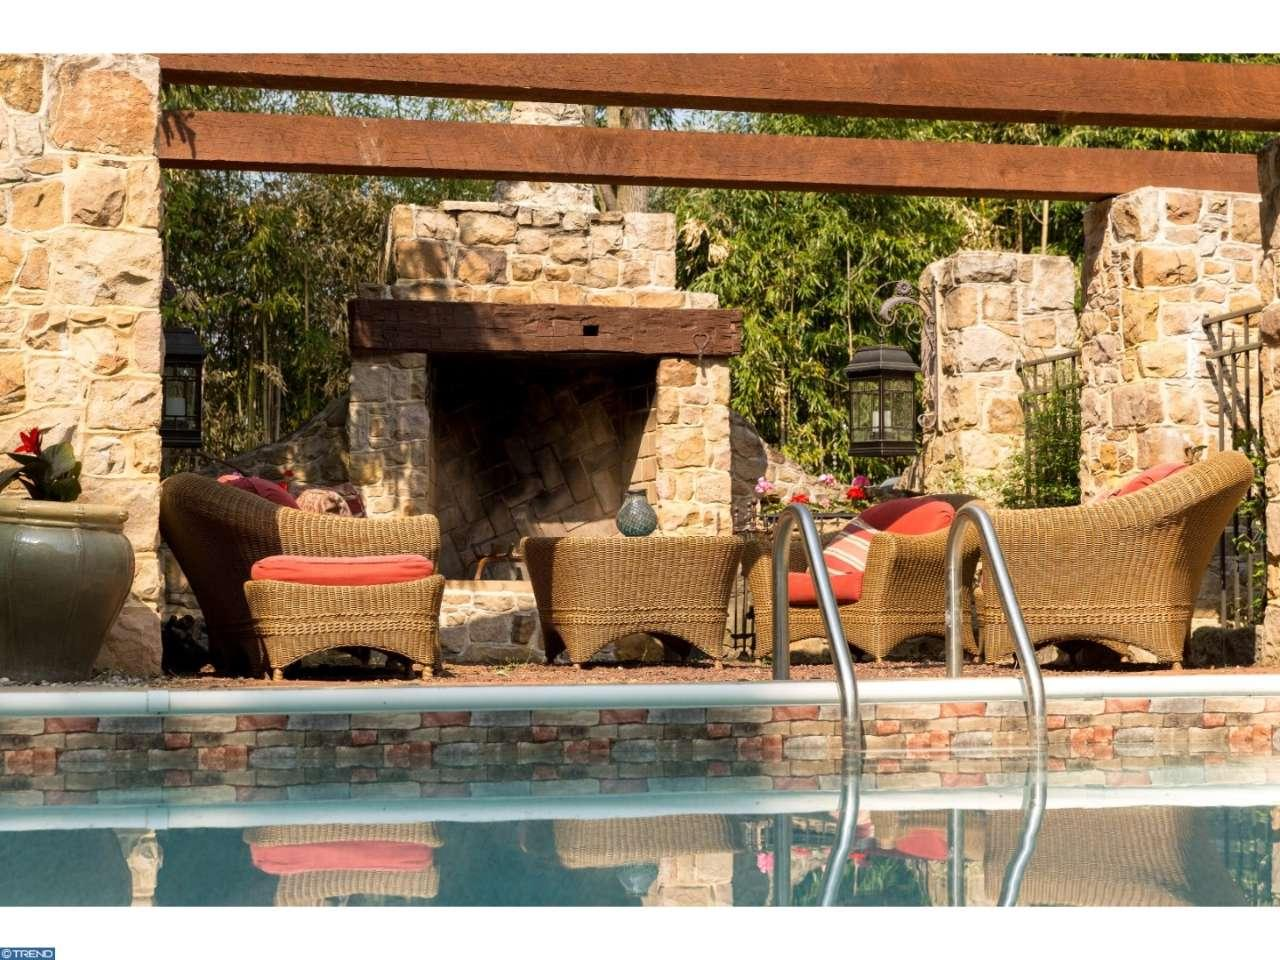 Poolside with stone fireplace - Leap Year Barn for sale in Doylestown PA